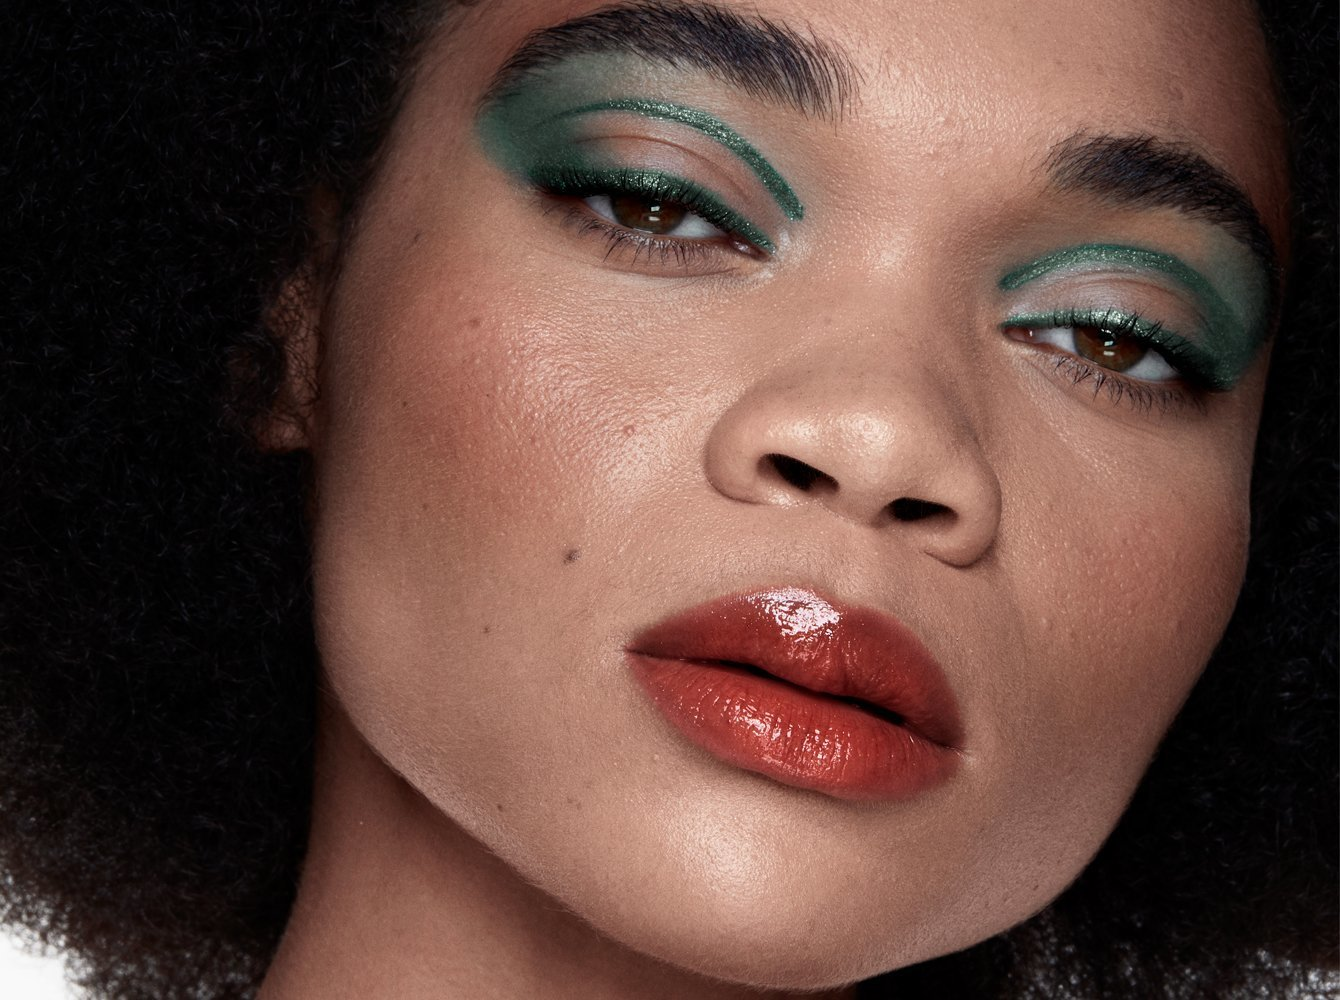 Attribution: [Chavi, a black female model, is wearing green eye shadow and crimson lip gloss. She is looking solemnly at the camera.] Via Haus Labs.